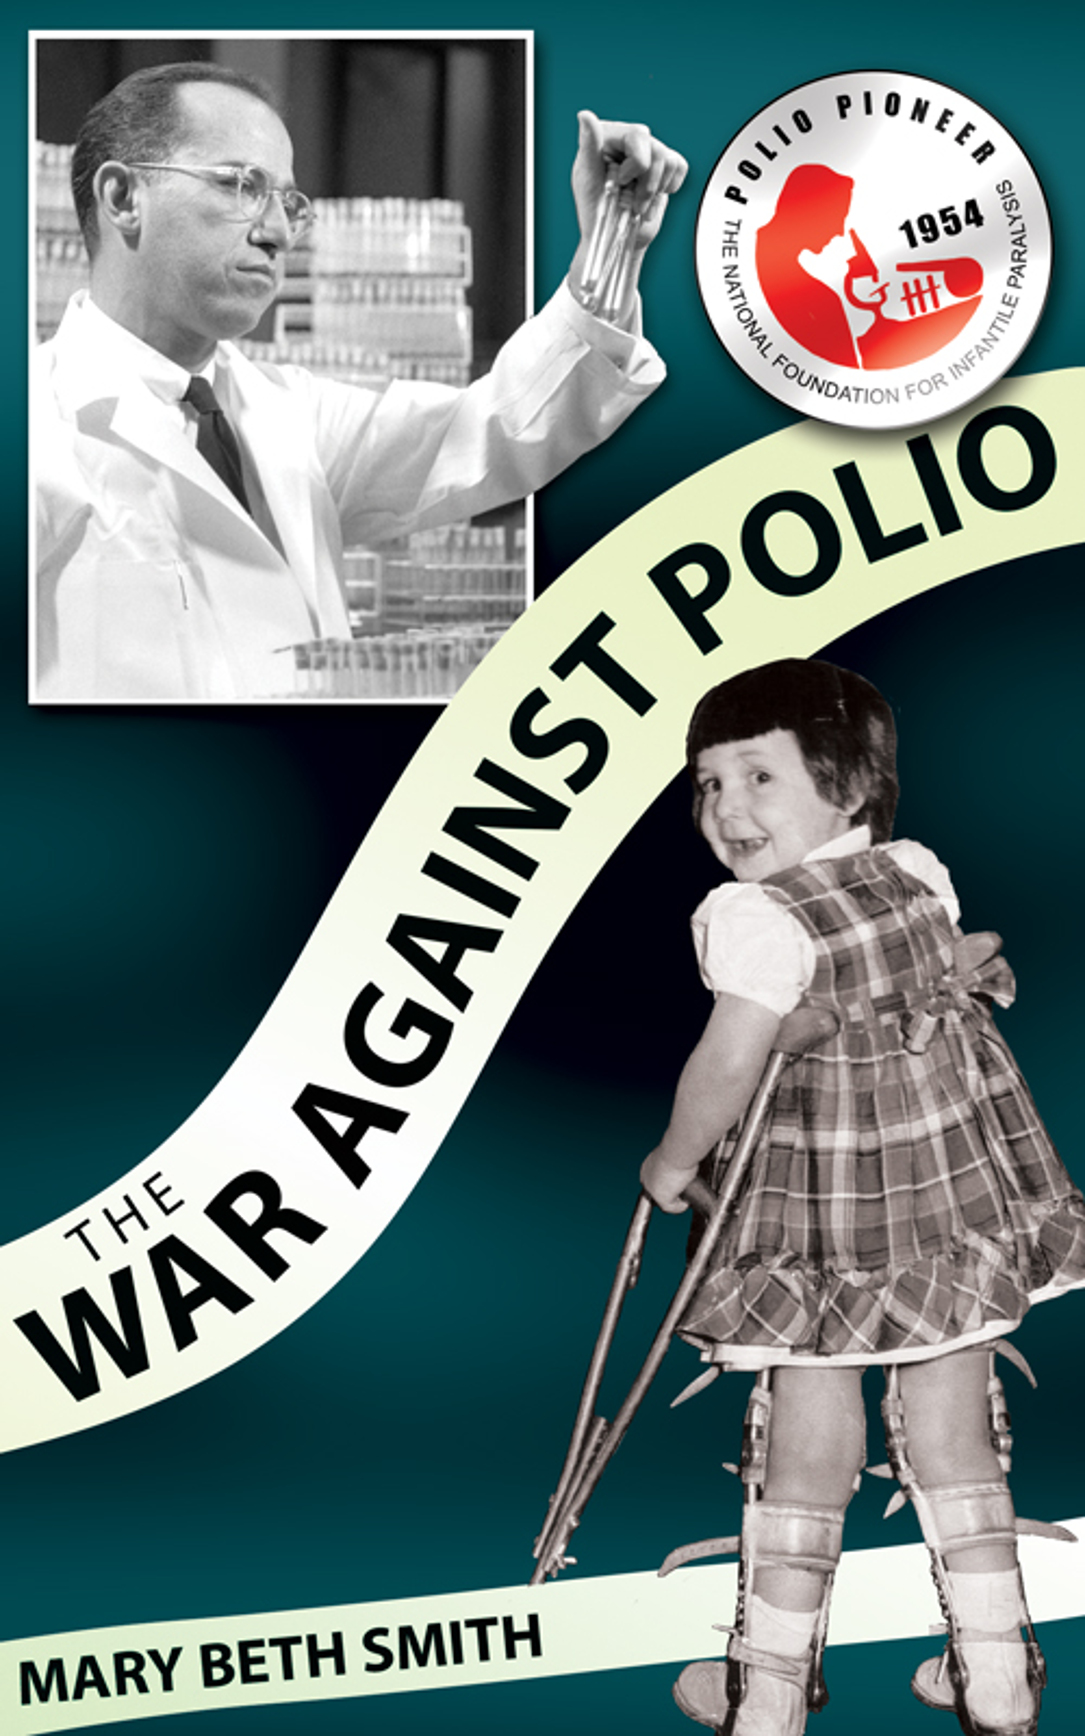 The War Against Polio, by Mary Beth Smith